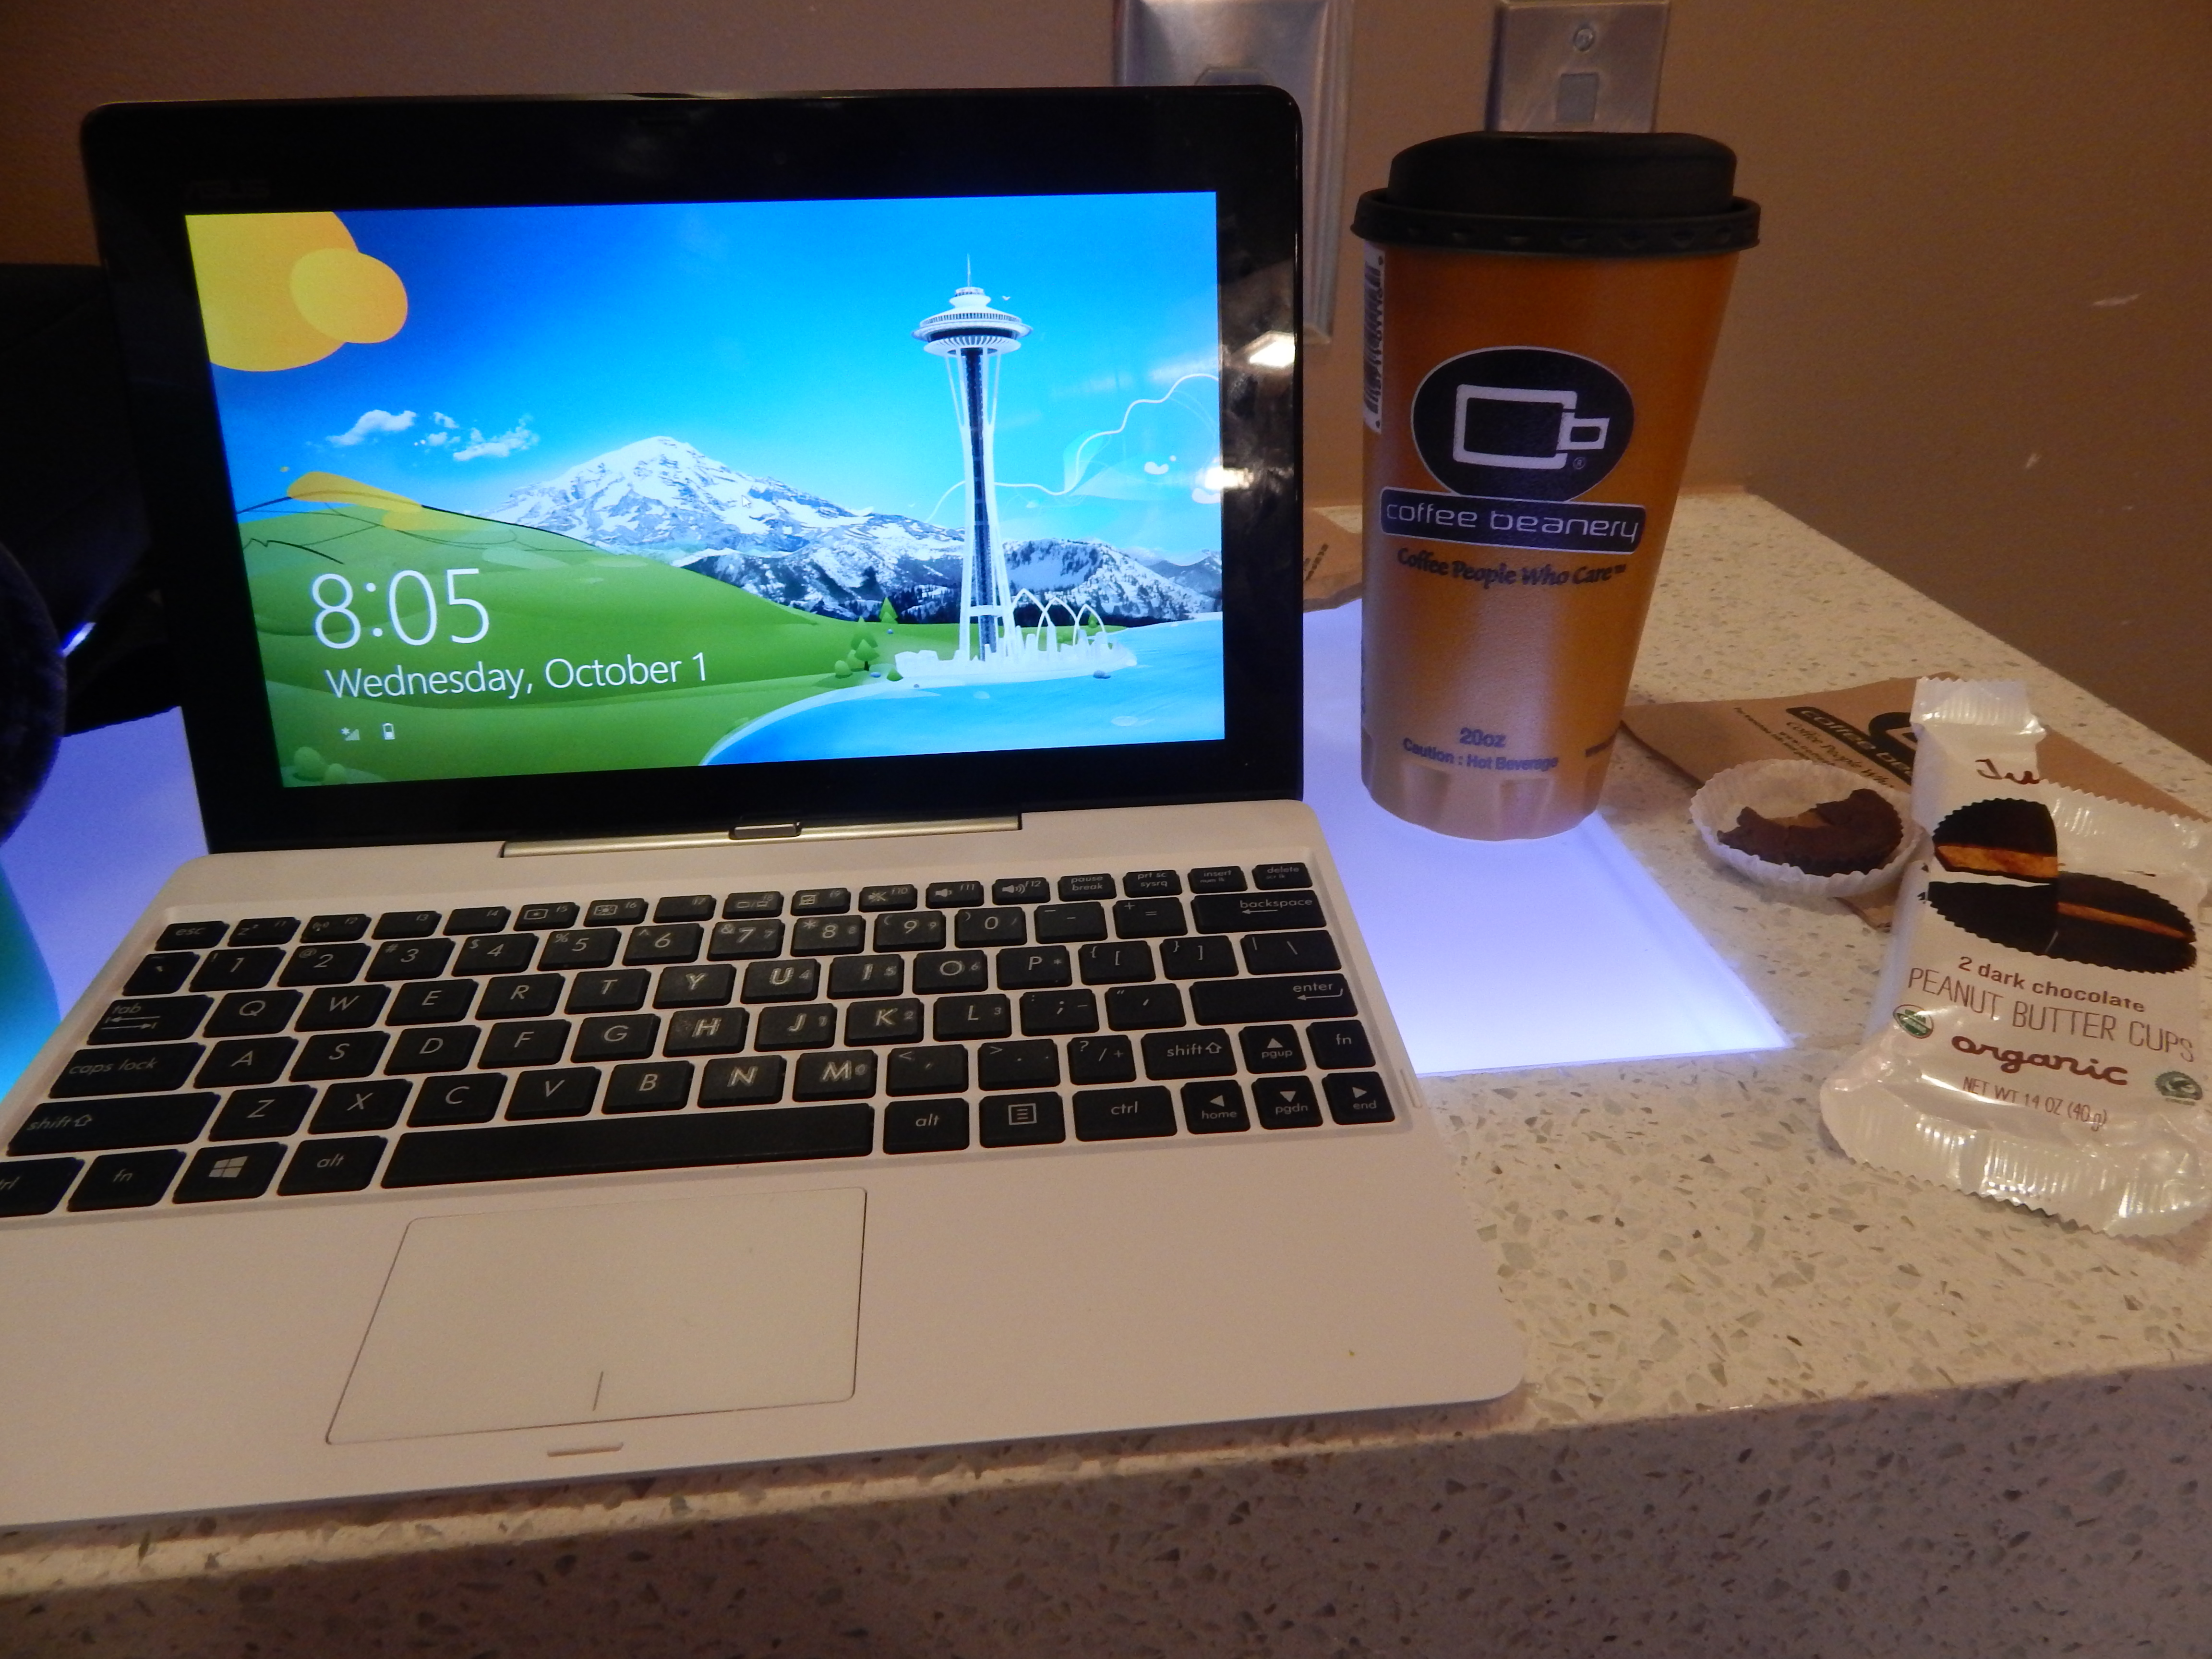 My work space at the Coffee Beanery in the Atlanta airport.